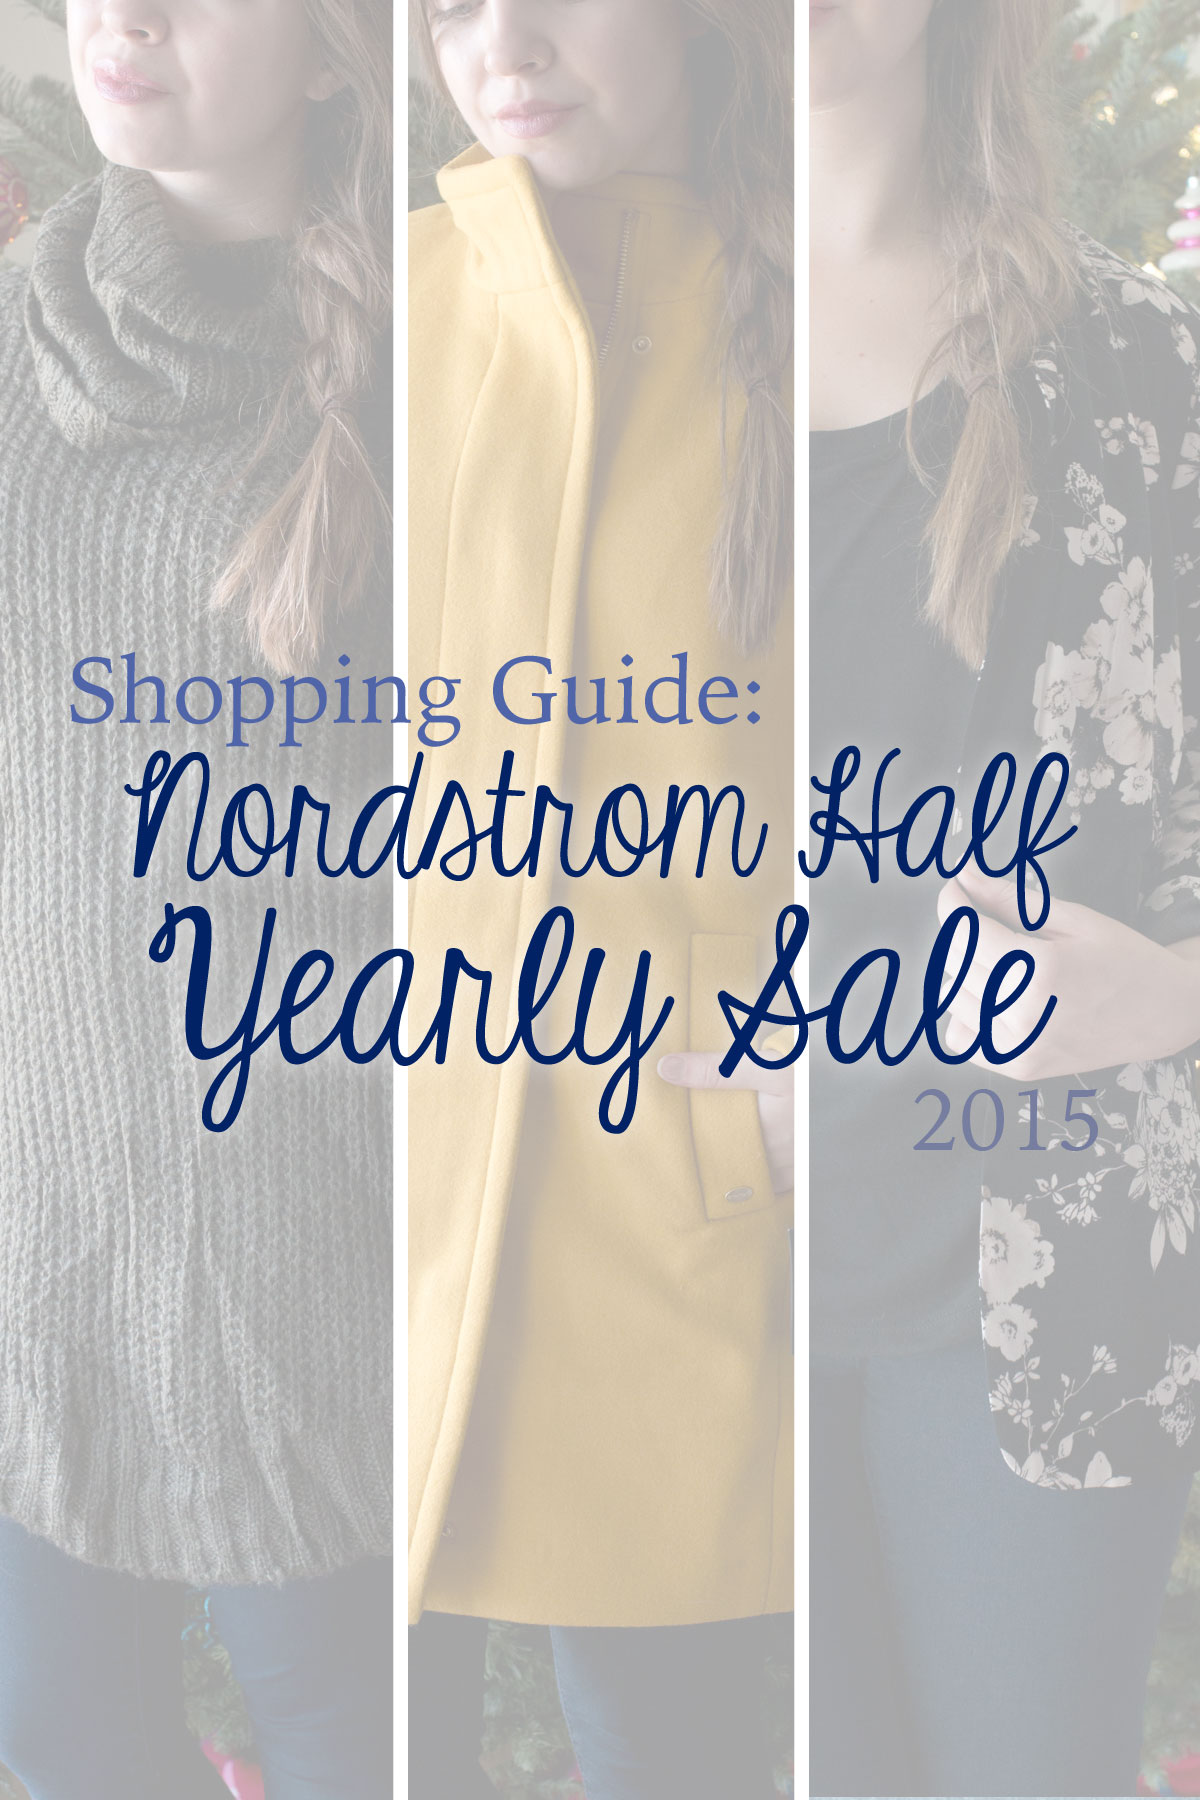 2f4d6bd6f3c Nordstrom Half Yearly Sale 2015 Shopping Guide & Haul